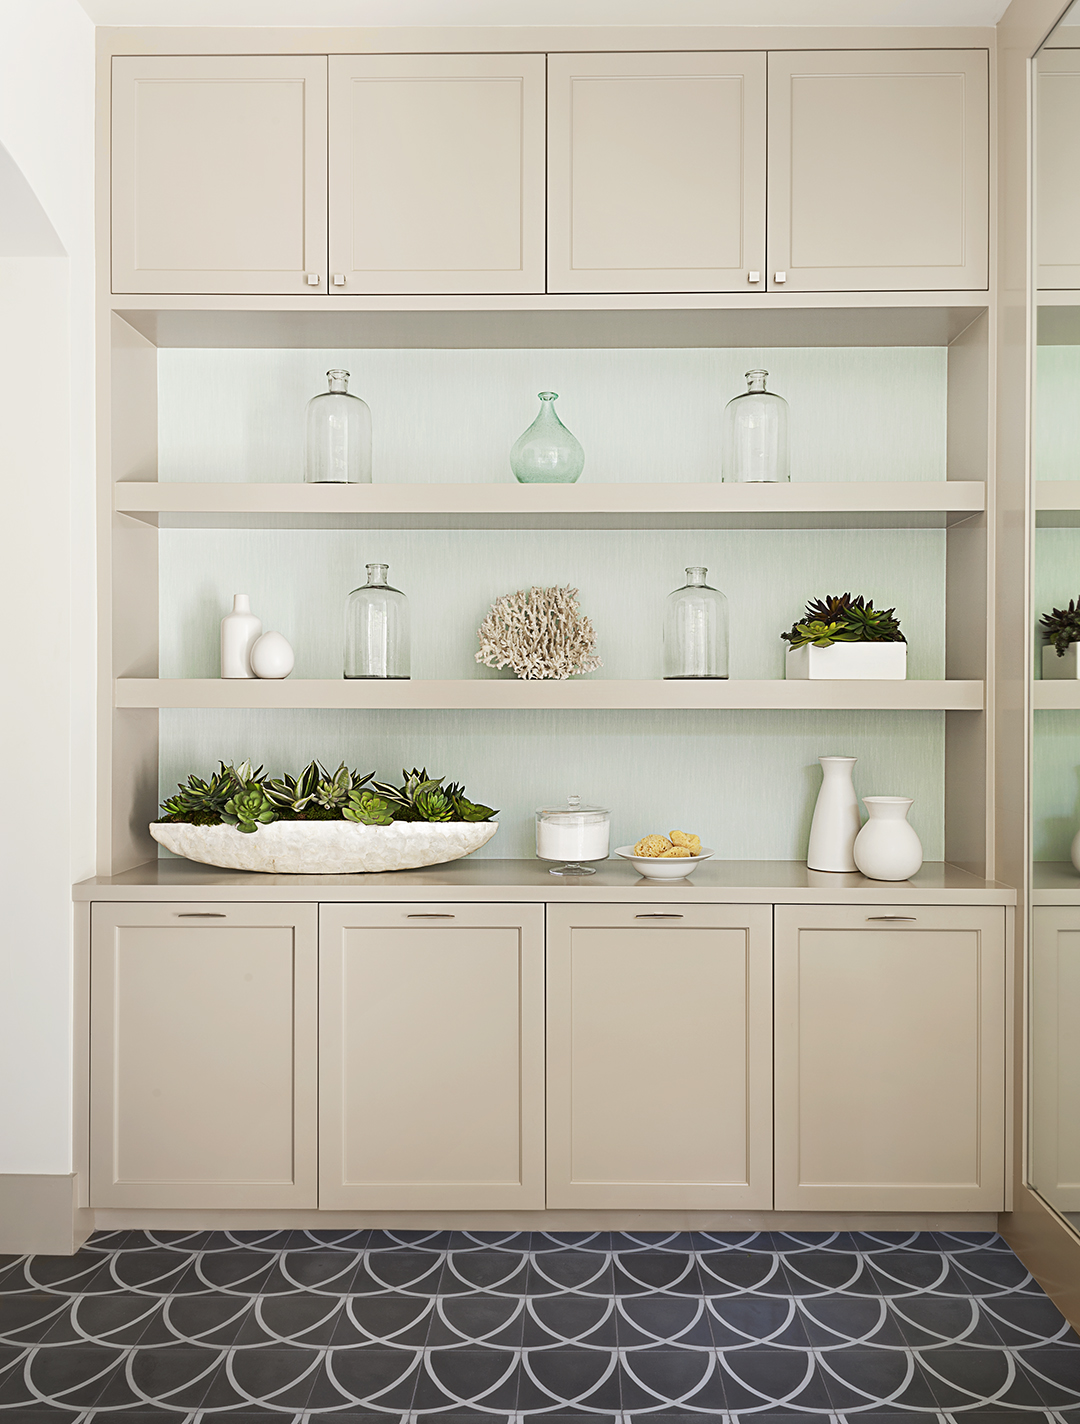 beige cabinets with open shelving